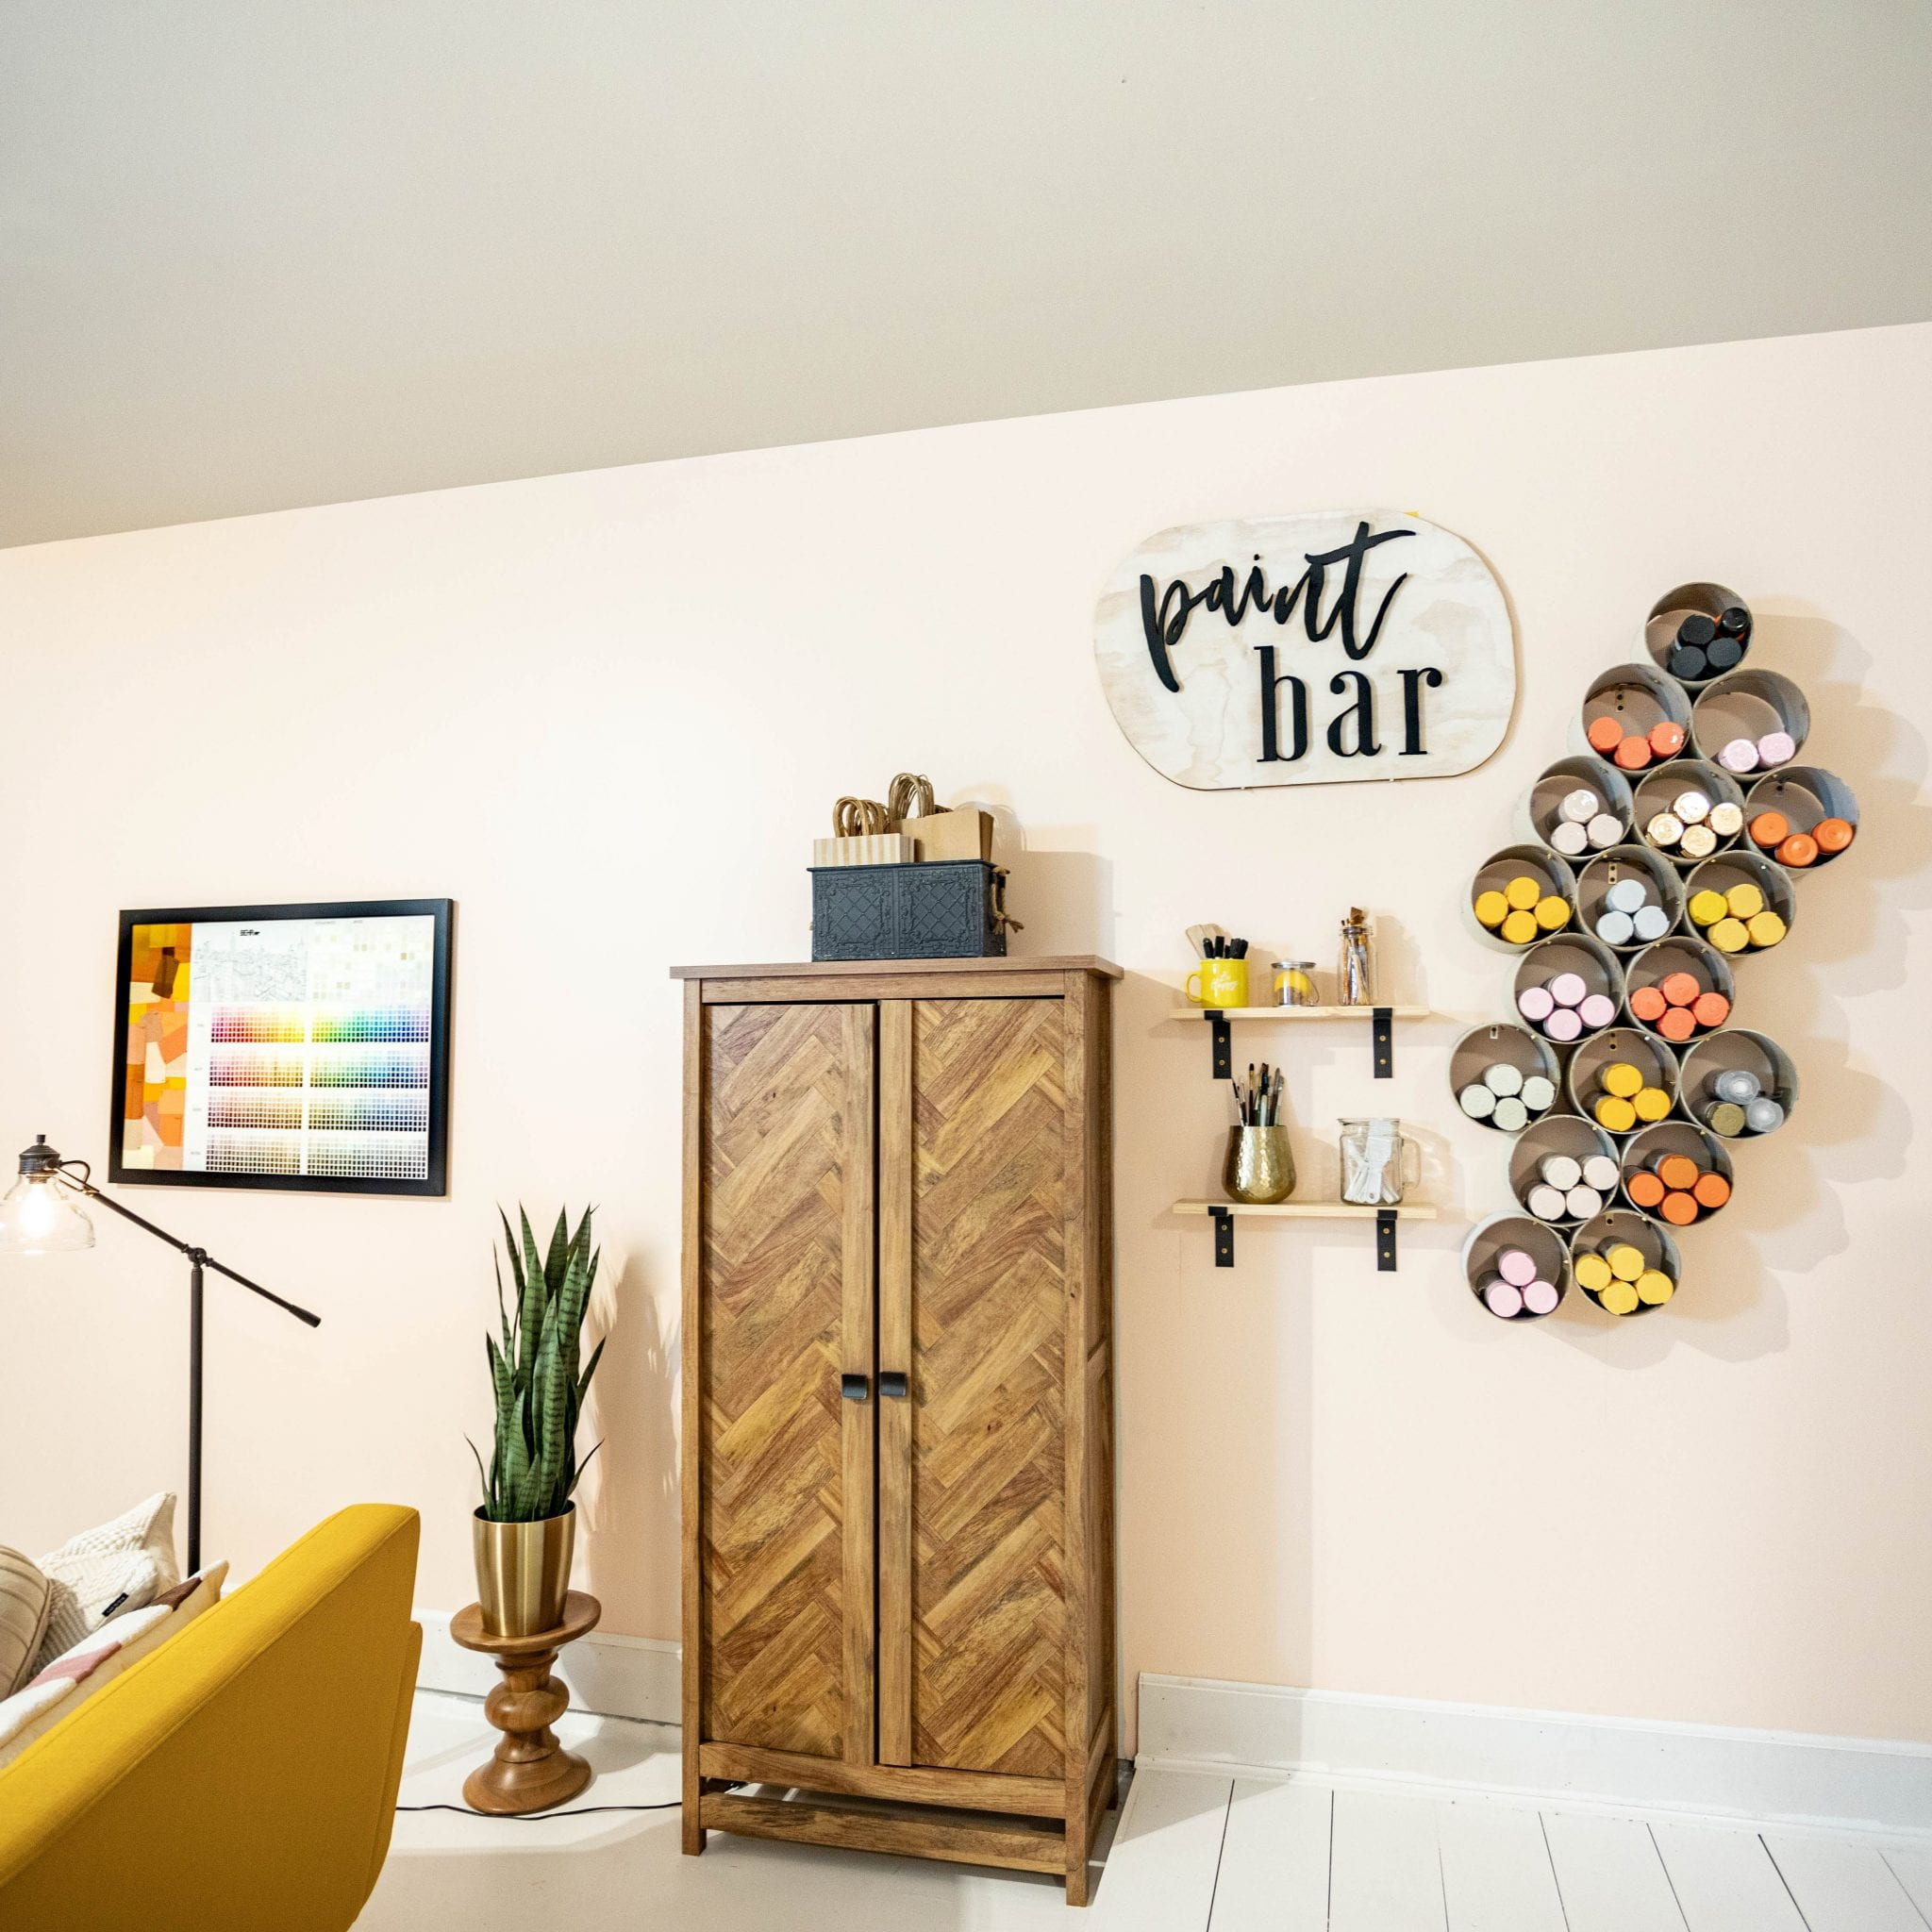 SPRAY PAINT STORAGE | Paint storage DIY | Spray paint wall | storage ideas | Never Skip Brunch by Cara Newhart | #home #diy #decor #neverskipbrunch